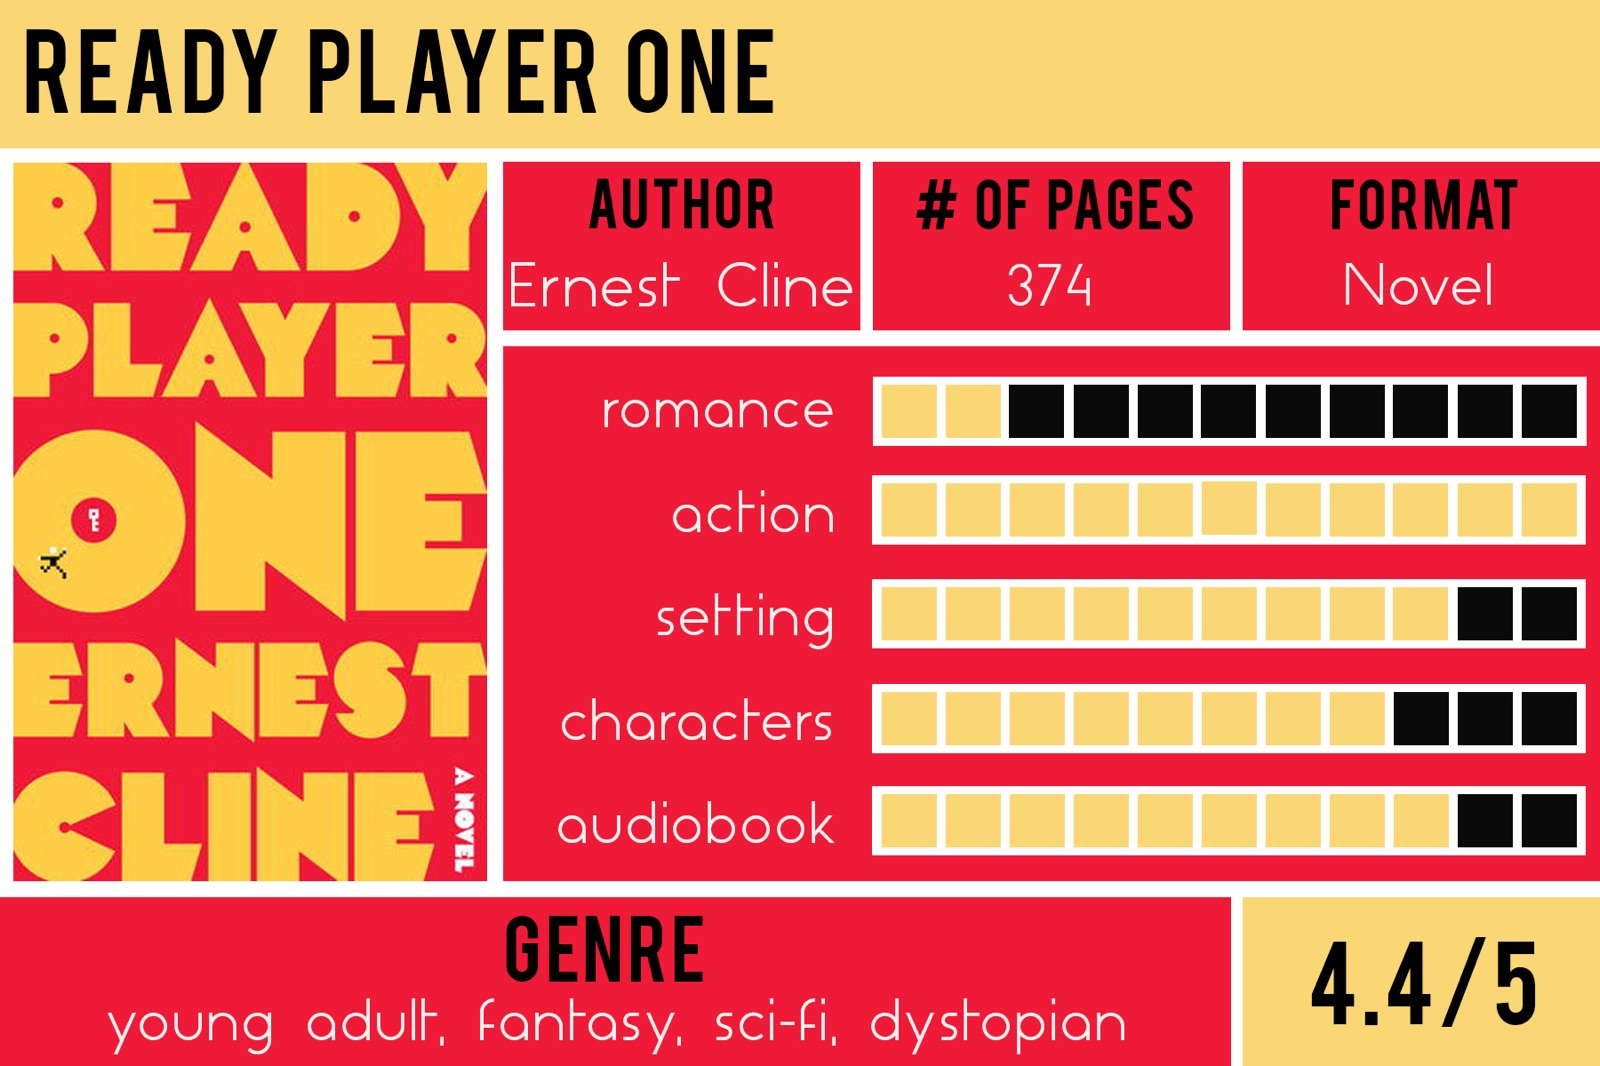 Ready Player One Book Review - Common Sense Media